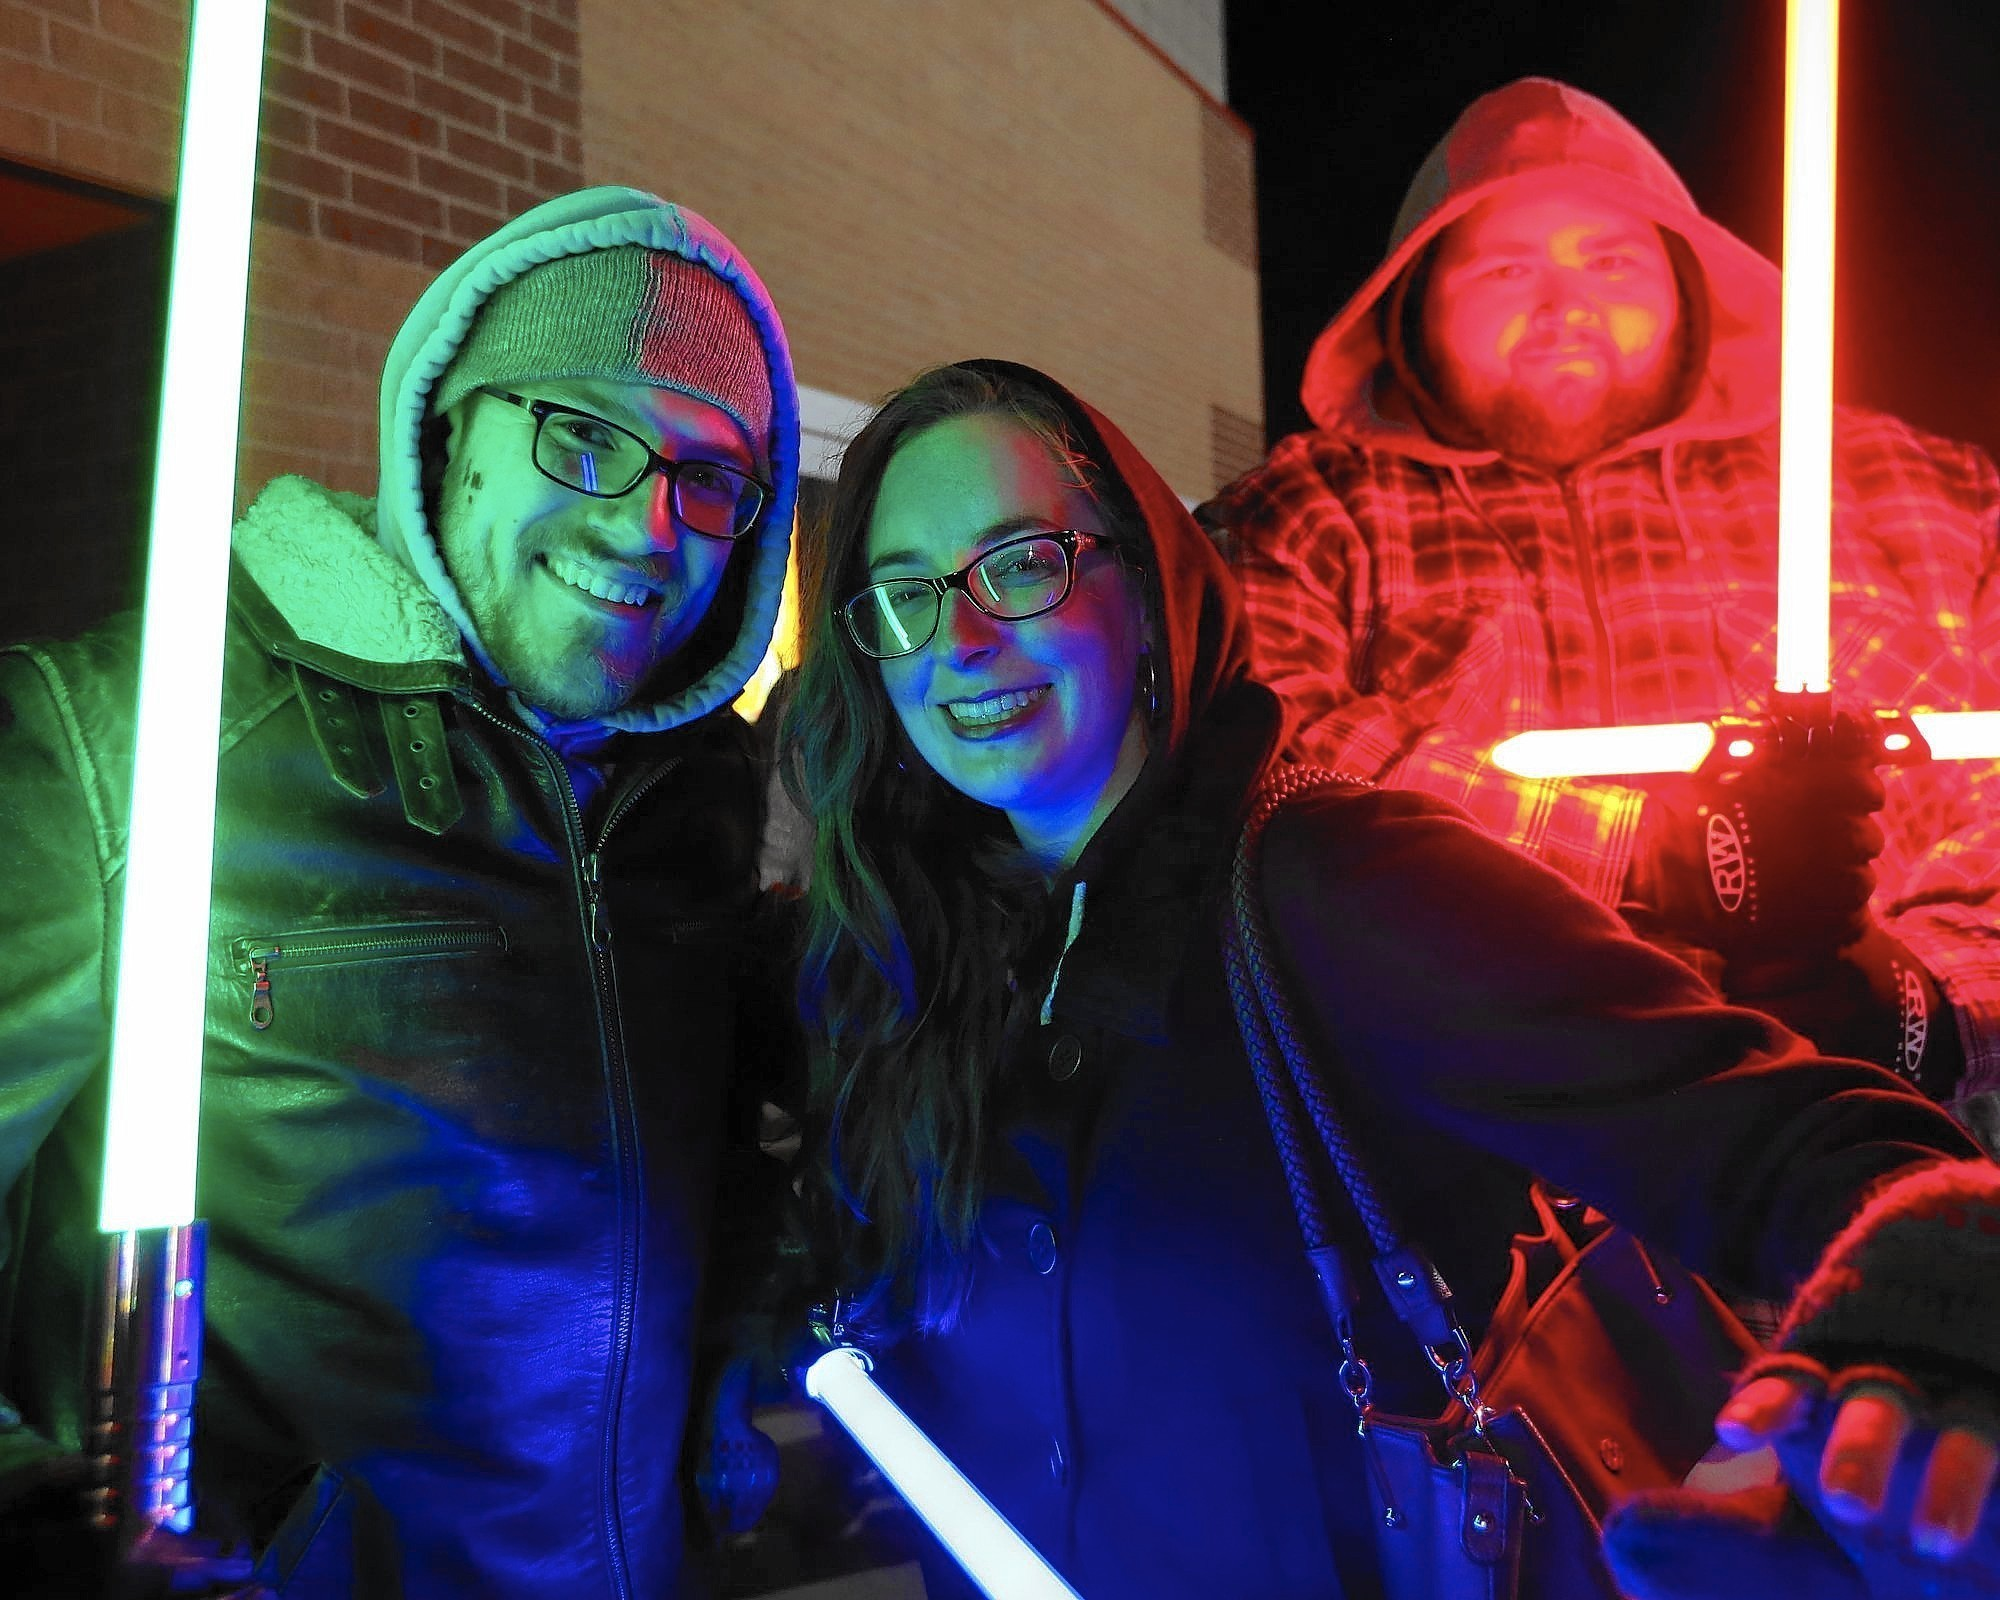 Southland 39 Star Wars 39 Fans Turn Out In Force For New Flick